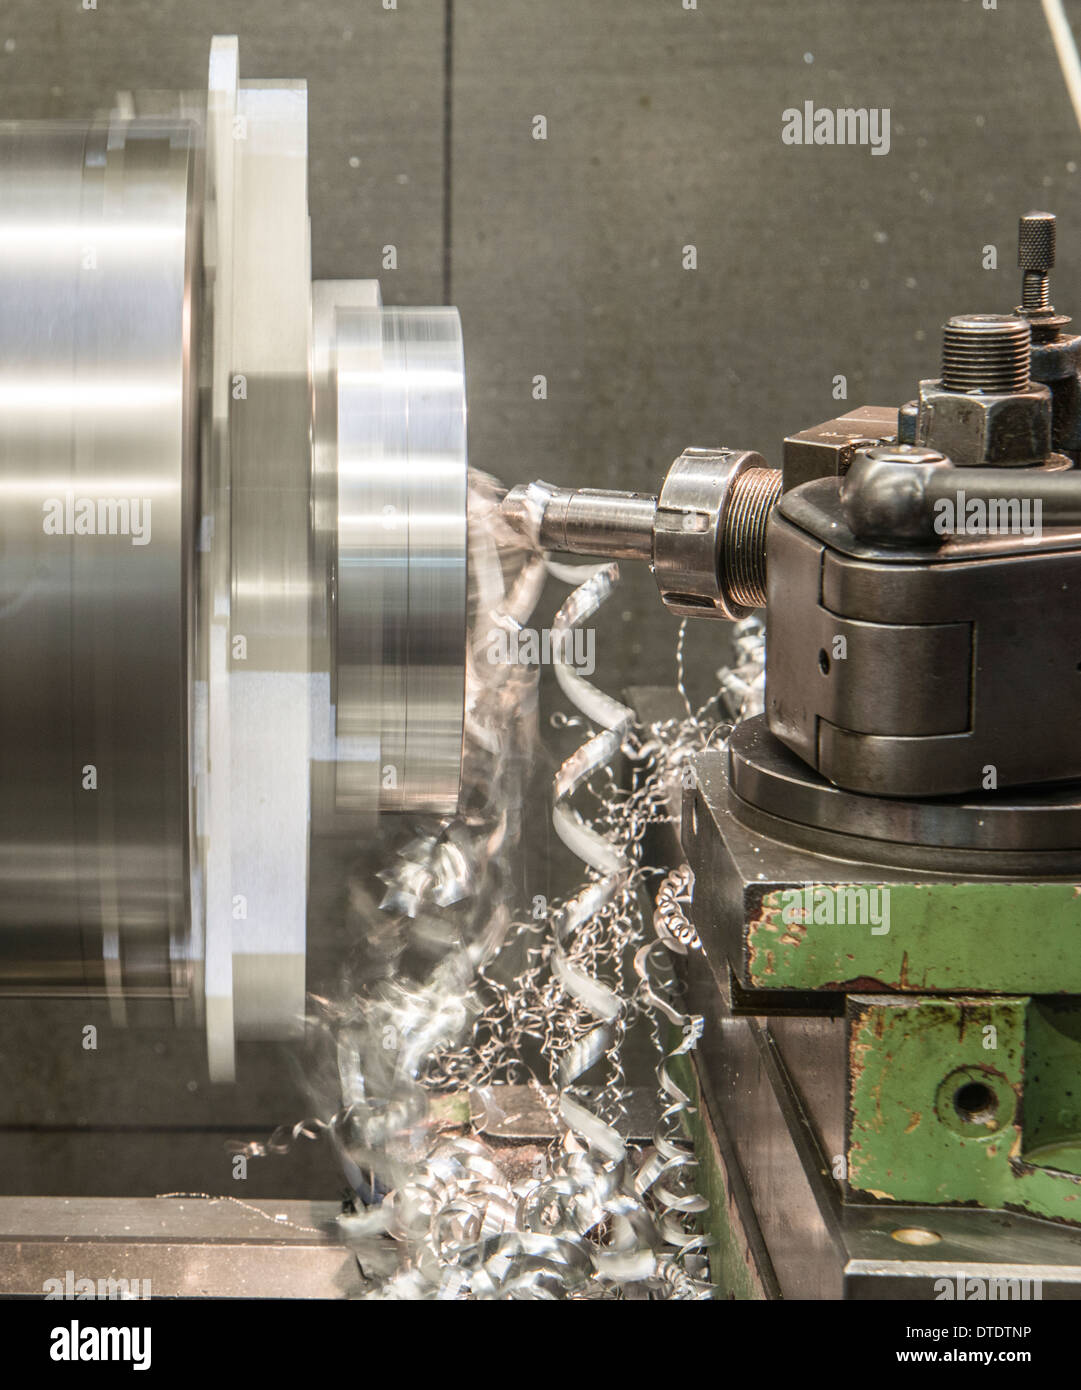 a Lathe Metal tooling shop floor - Stock Image